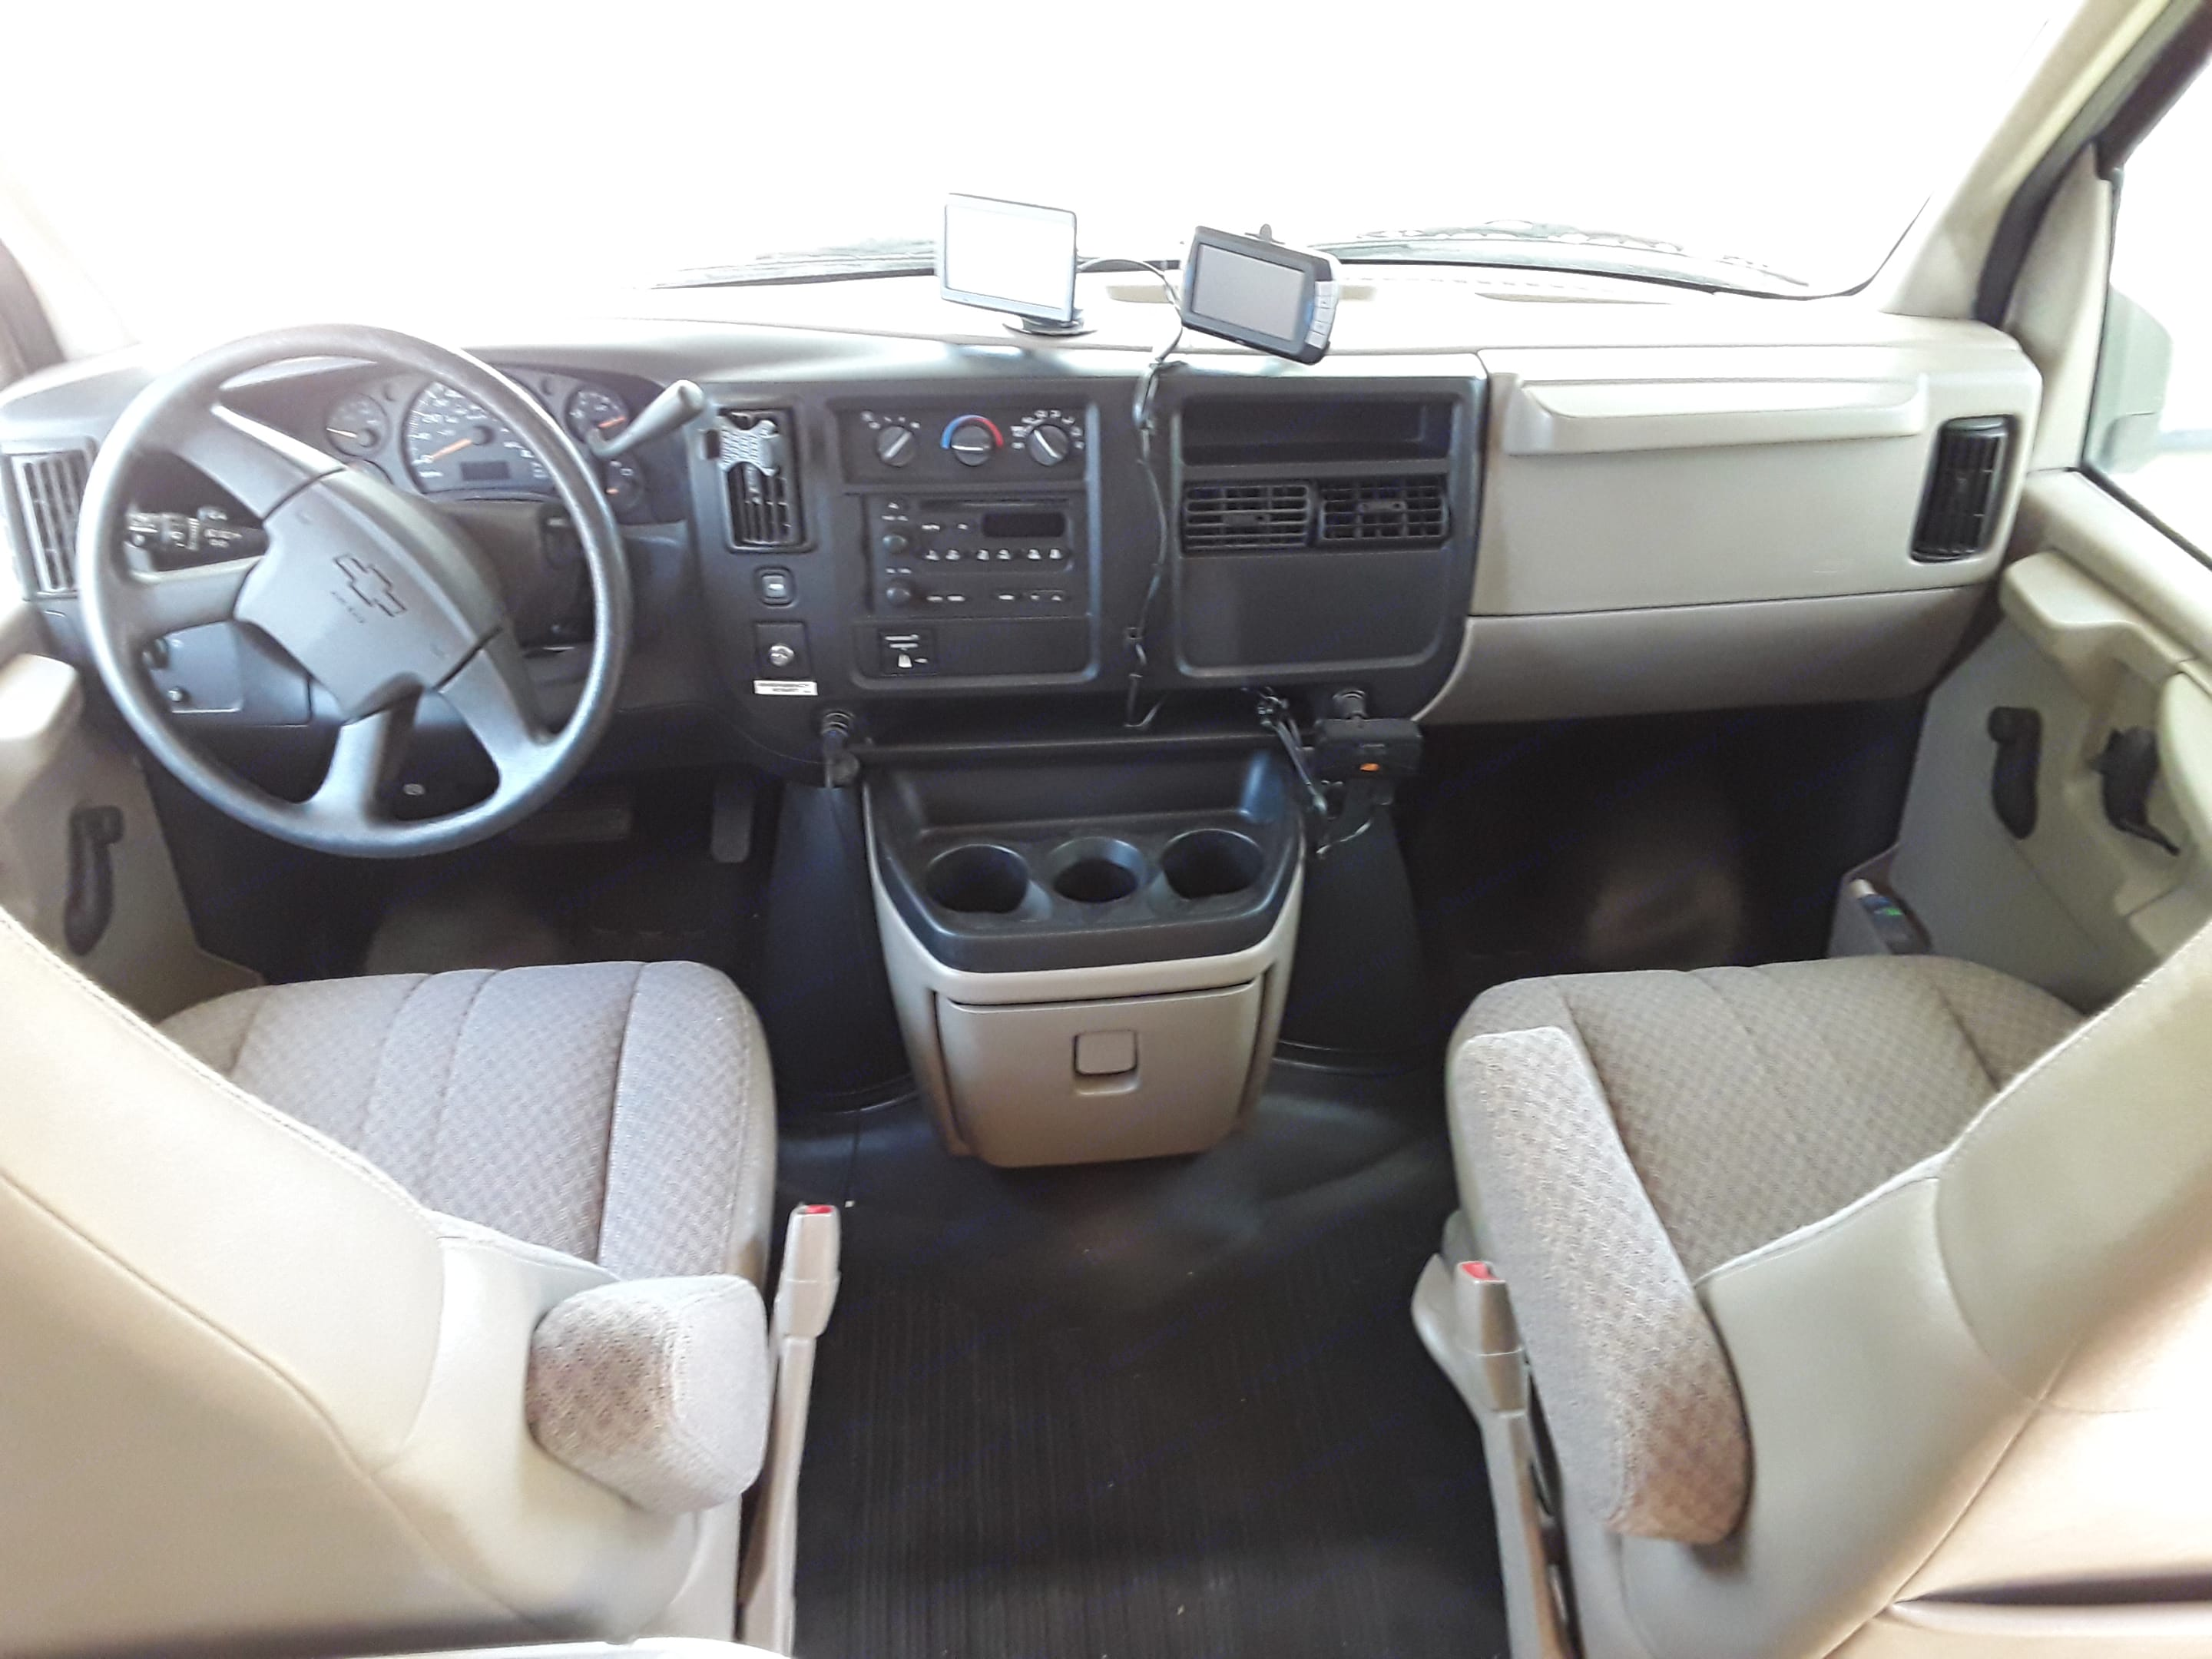 Cruse control, cold A/C, backup camera, USB chargers and GPS. Also has windshield cover for privacy.. Coachmen Freedom Express 2004